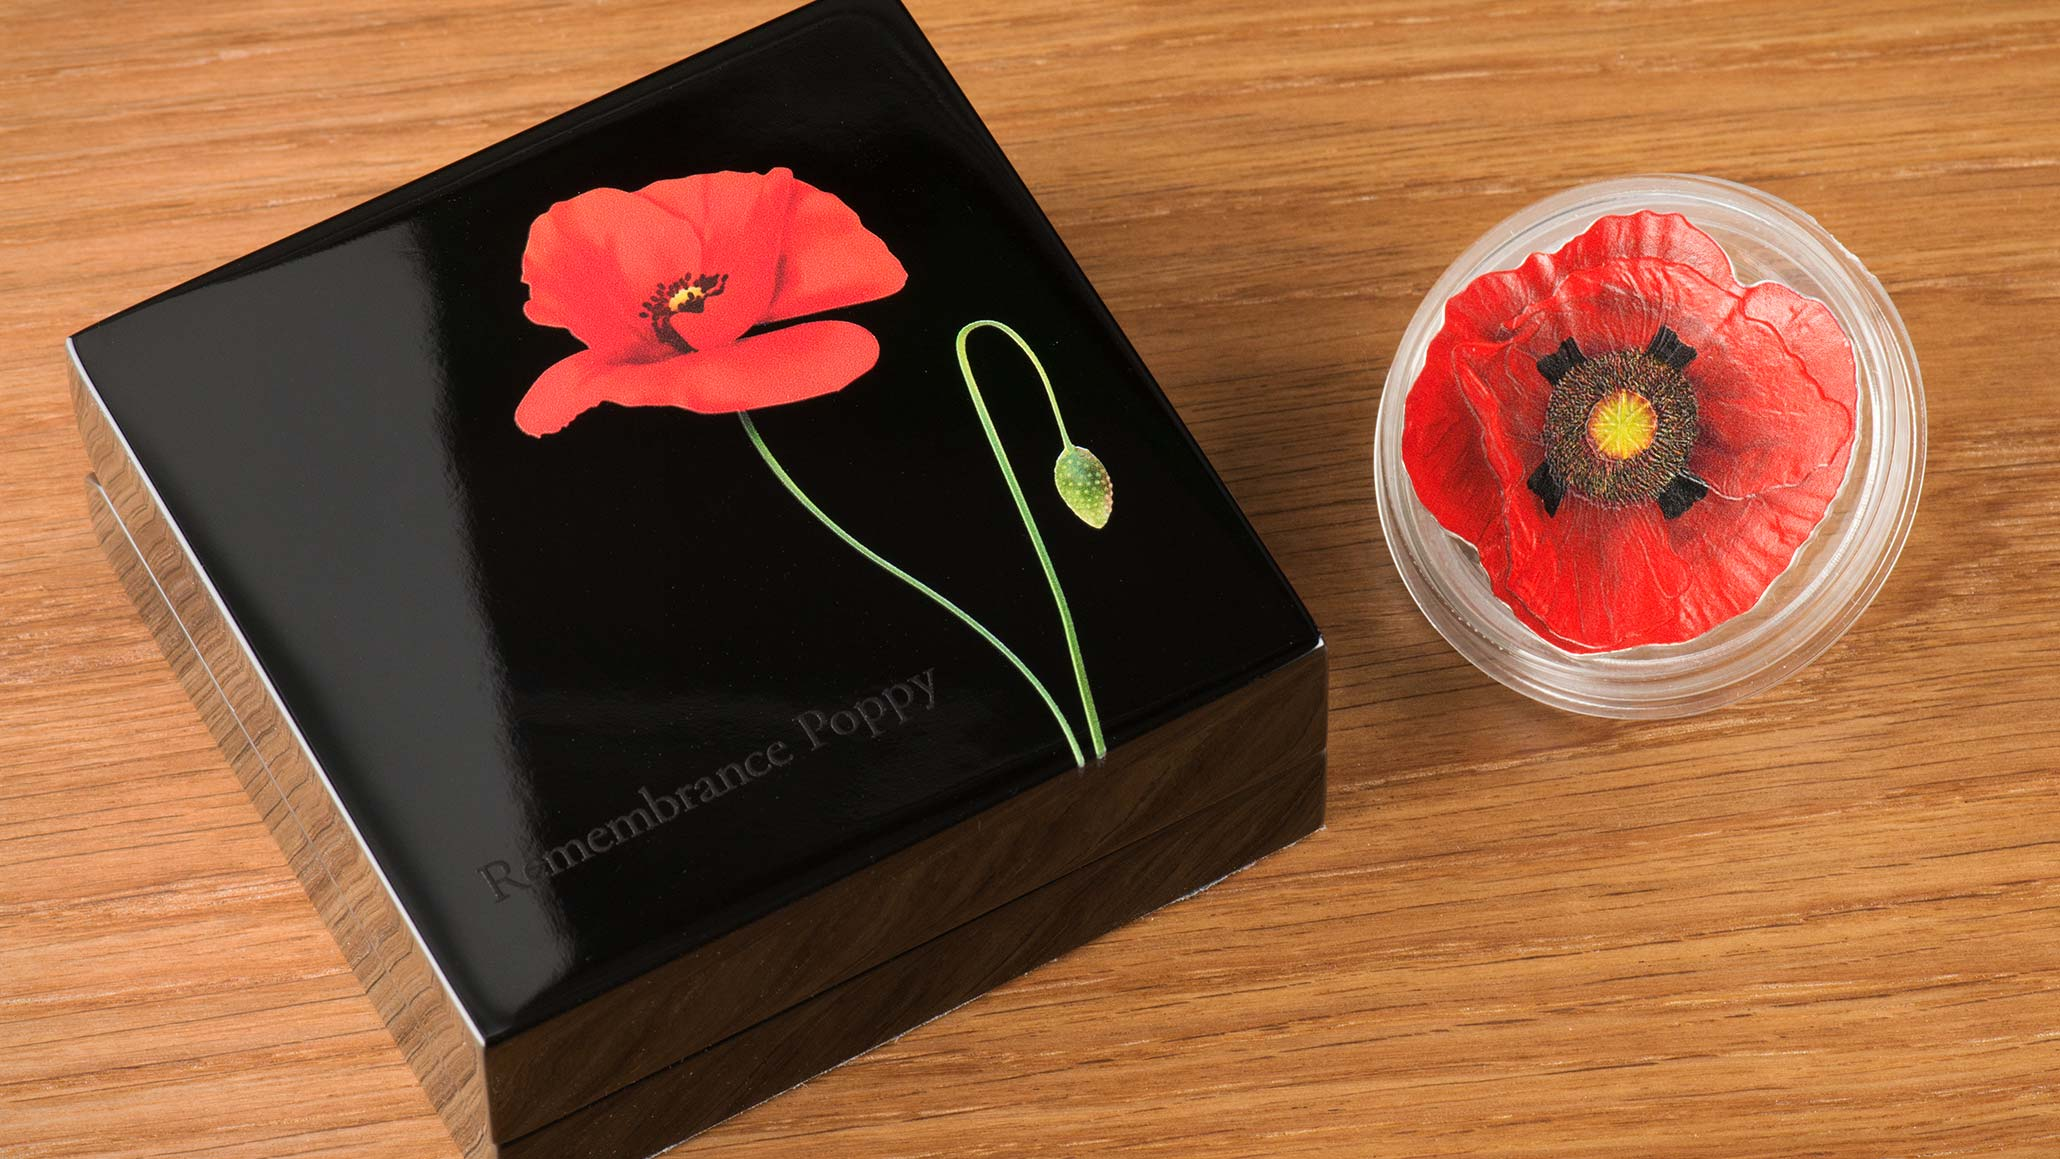 smartminting silver coin in shape of a remembrance poppy